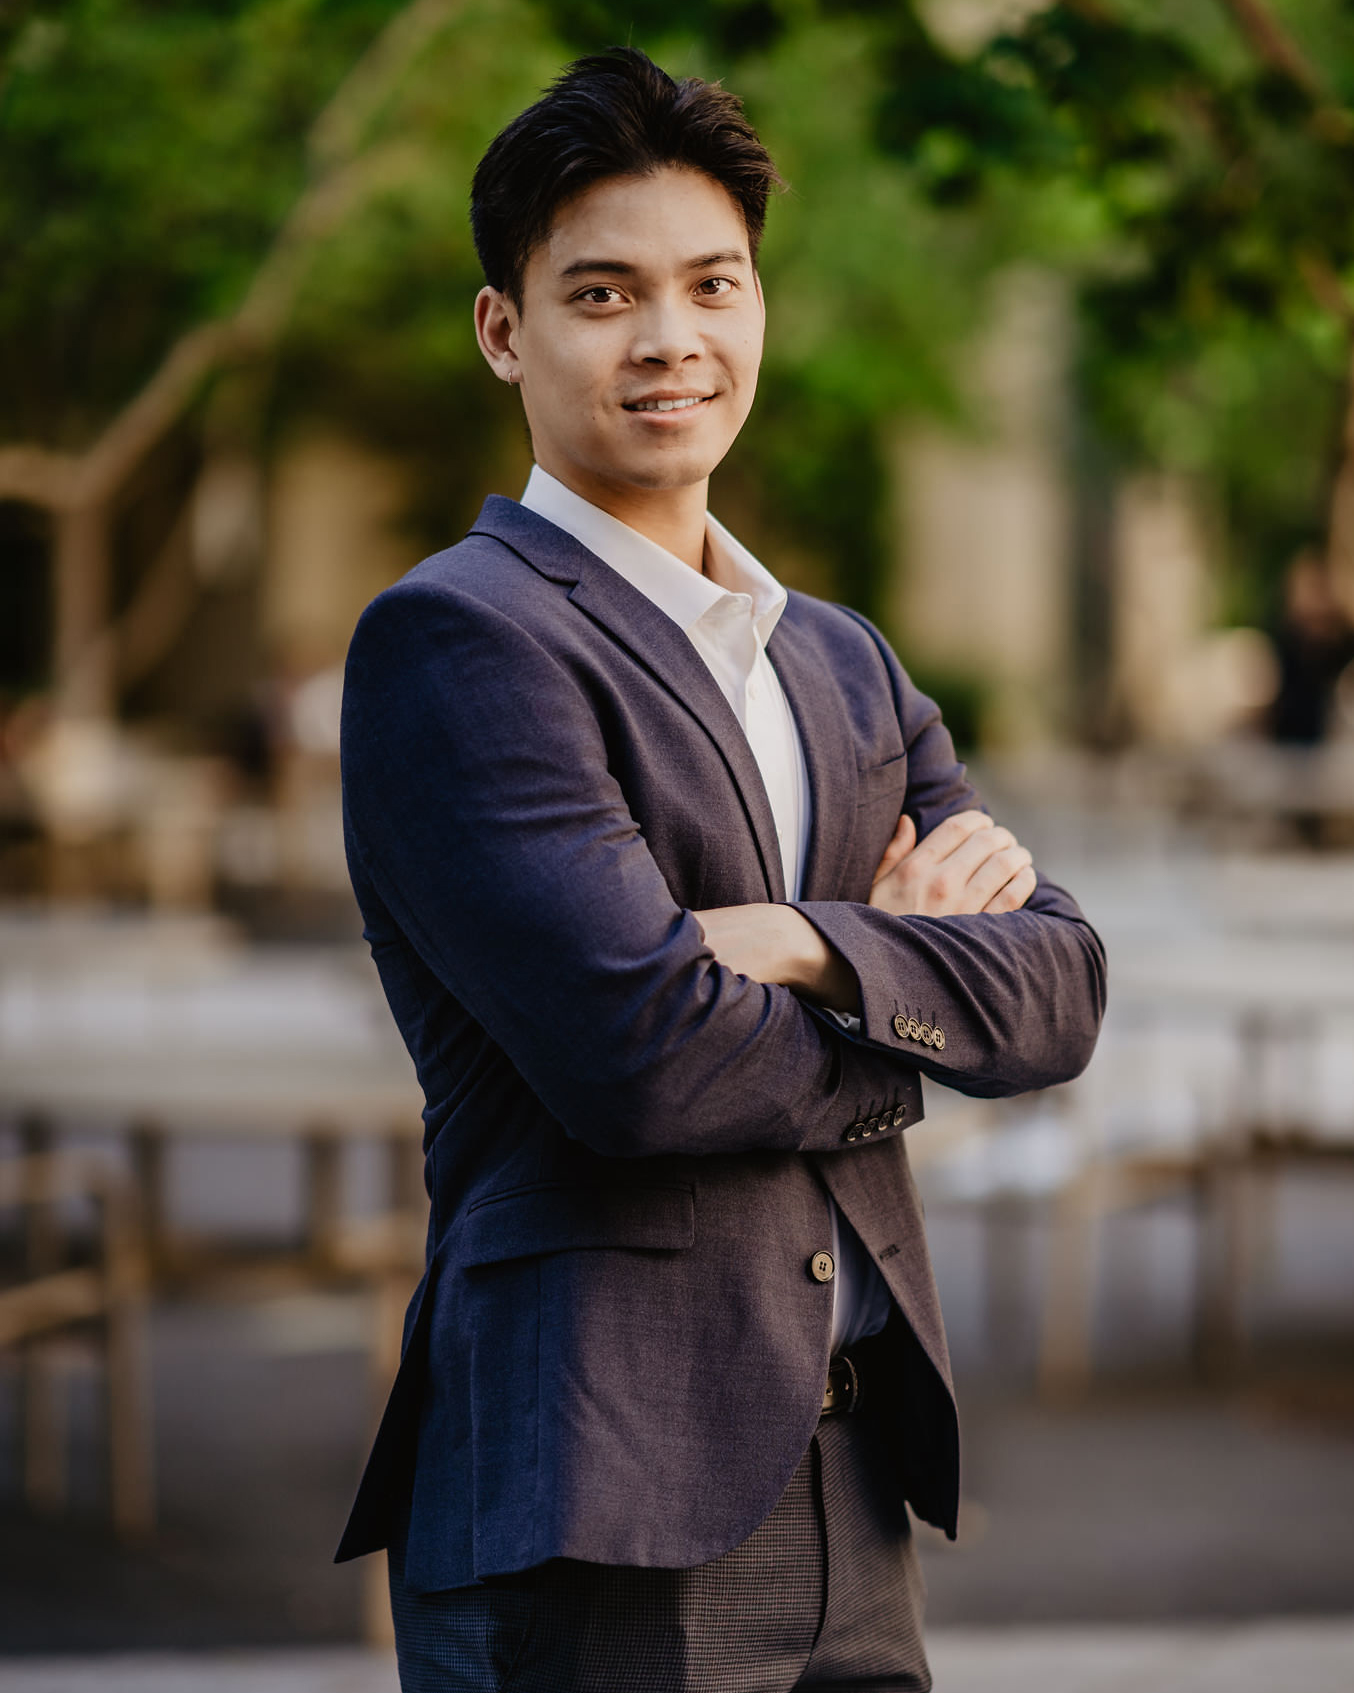 Thomas Nguyen Associate -- Marketing & Creative (4-5 AR Crop)